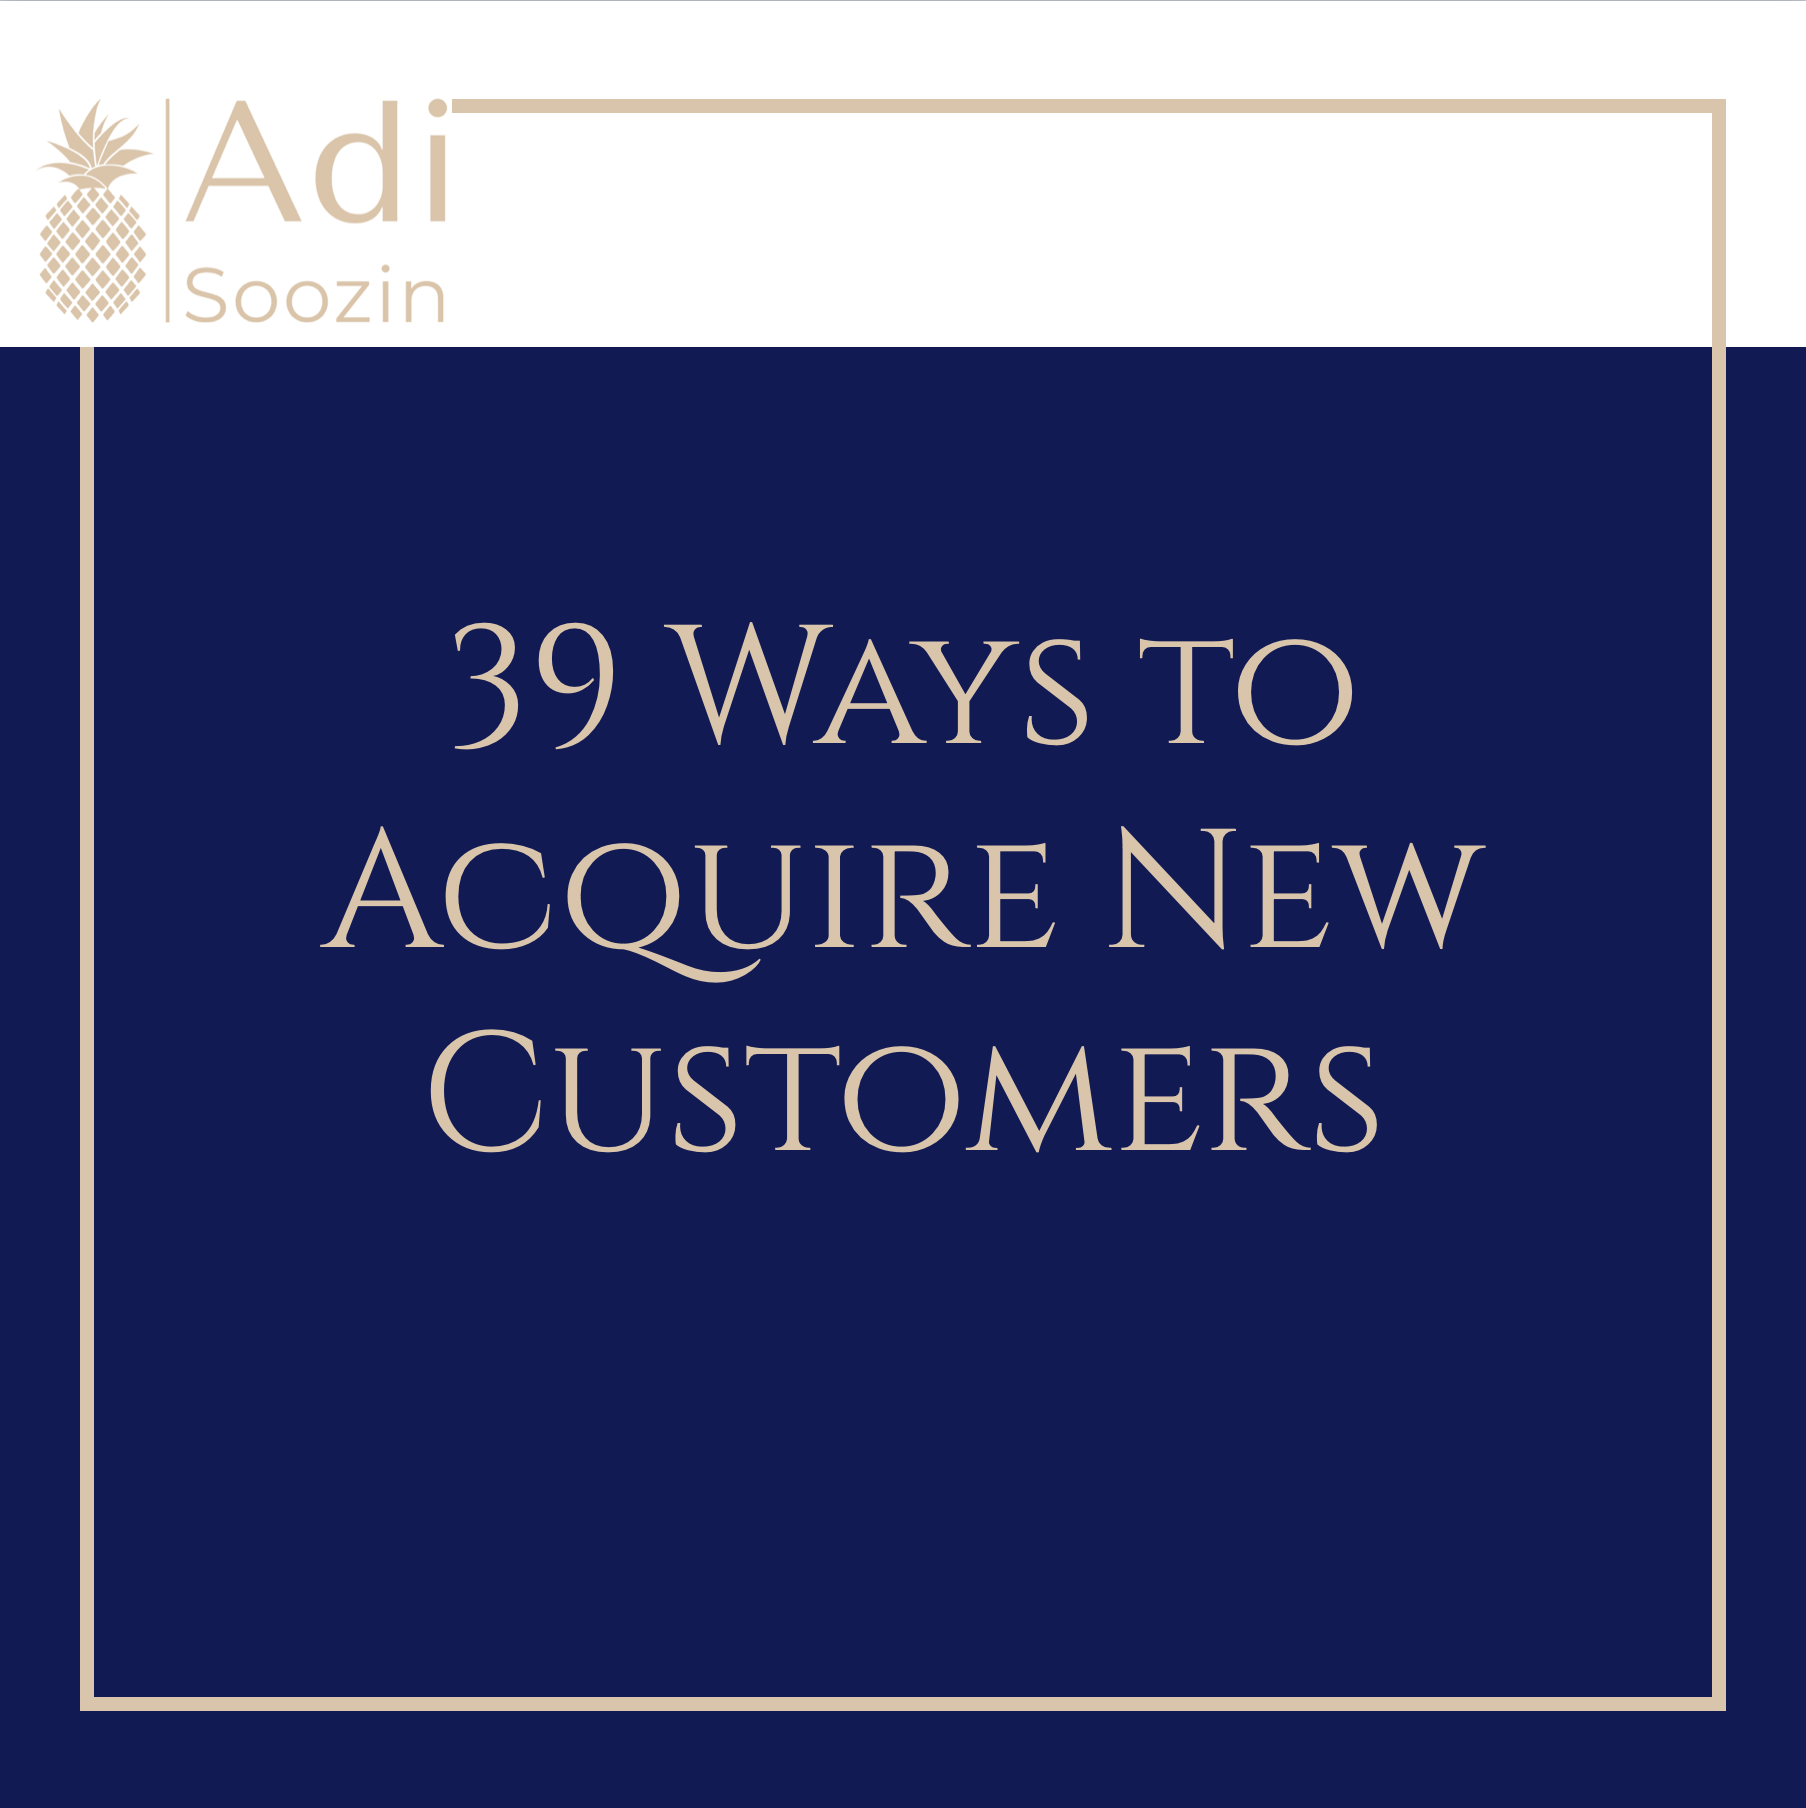 39 Ways To Acquire New Customers